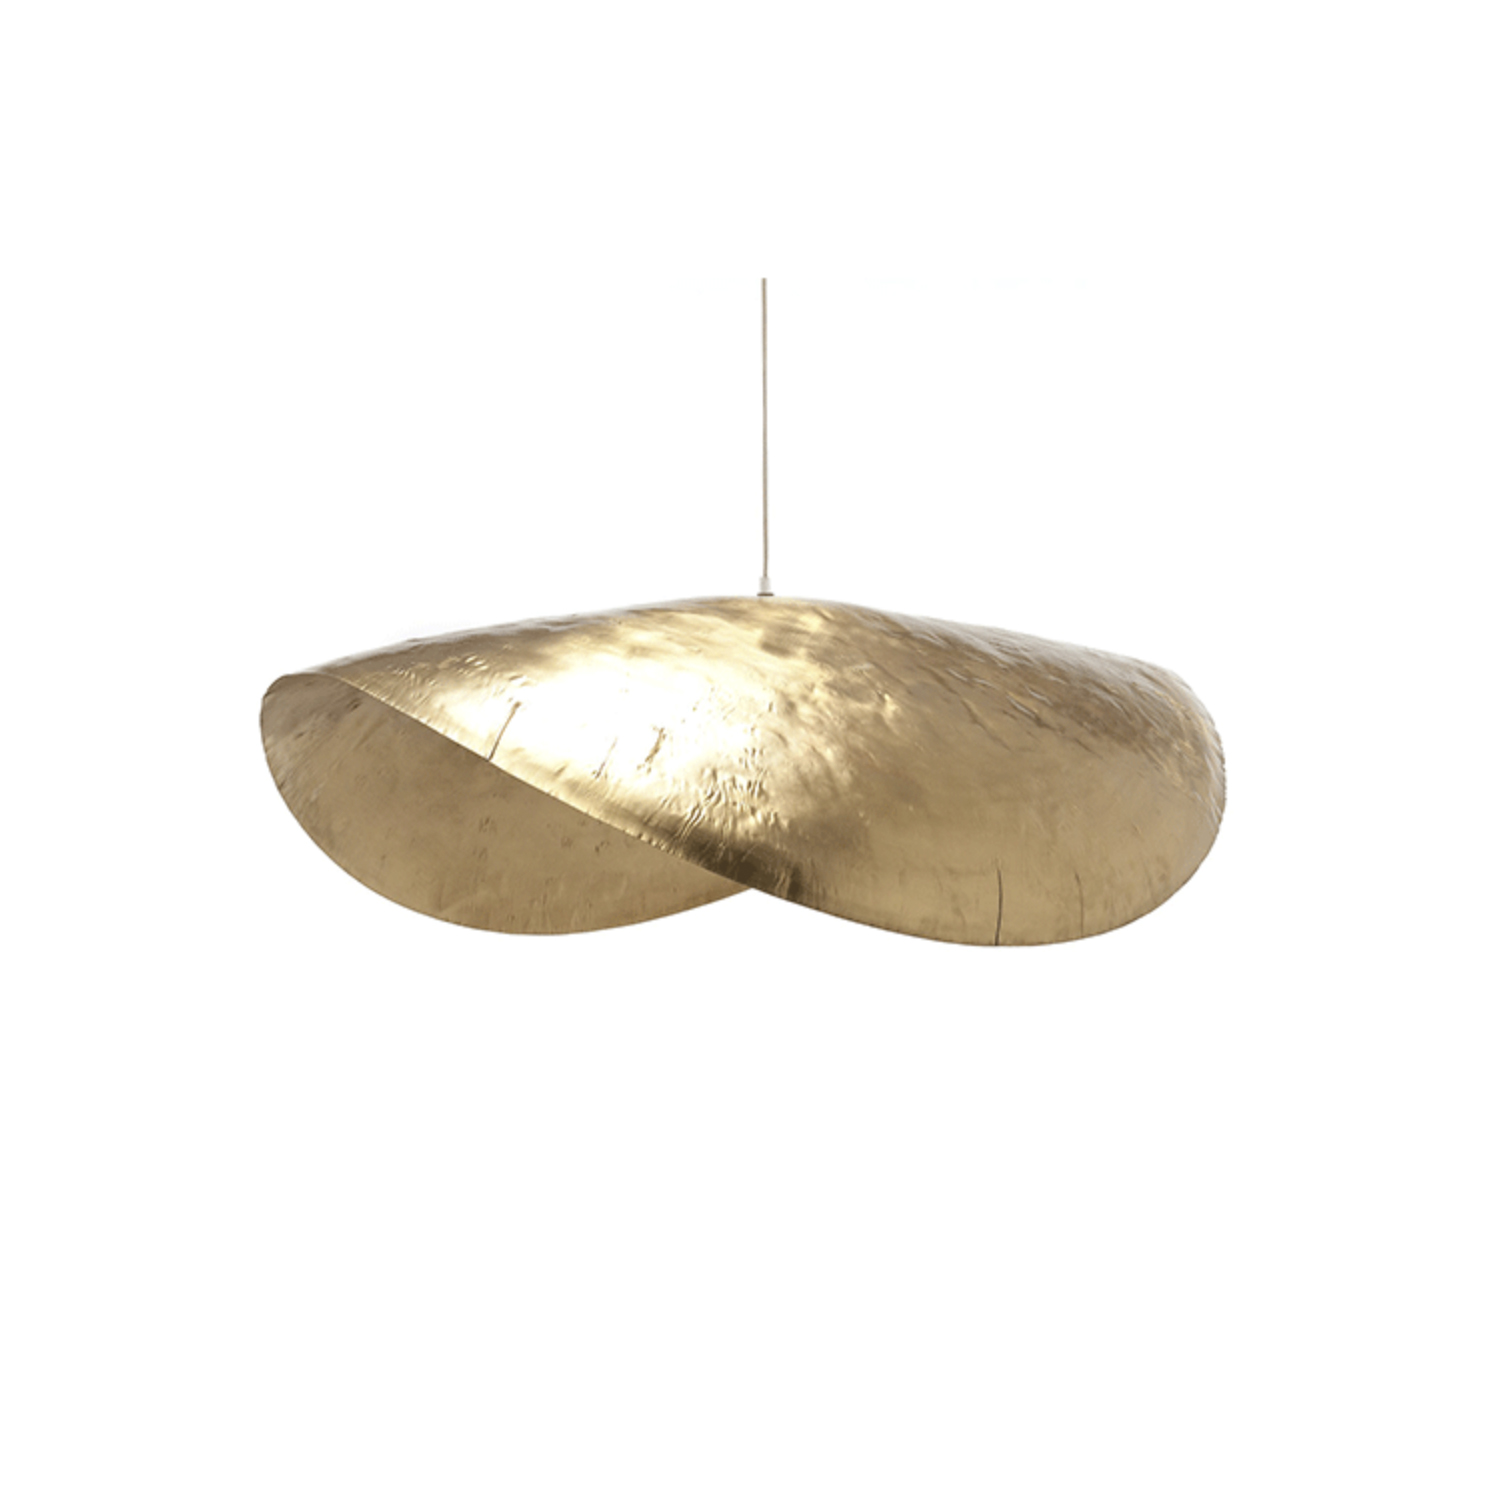 Brass 96 Pendant Lamp - Suspension lamp in hammered matt brass. Max. power 18 W, 220 Volt, bulb holder E 27. The bulb is not included. Electrical cable lenght of the lamp is 250 cm and the steel cable lenght is 200 cm.   Matter of Stuff